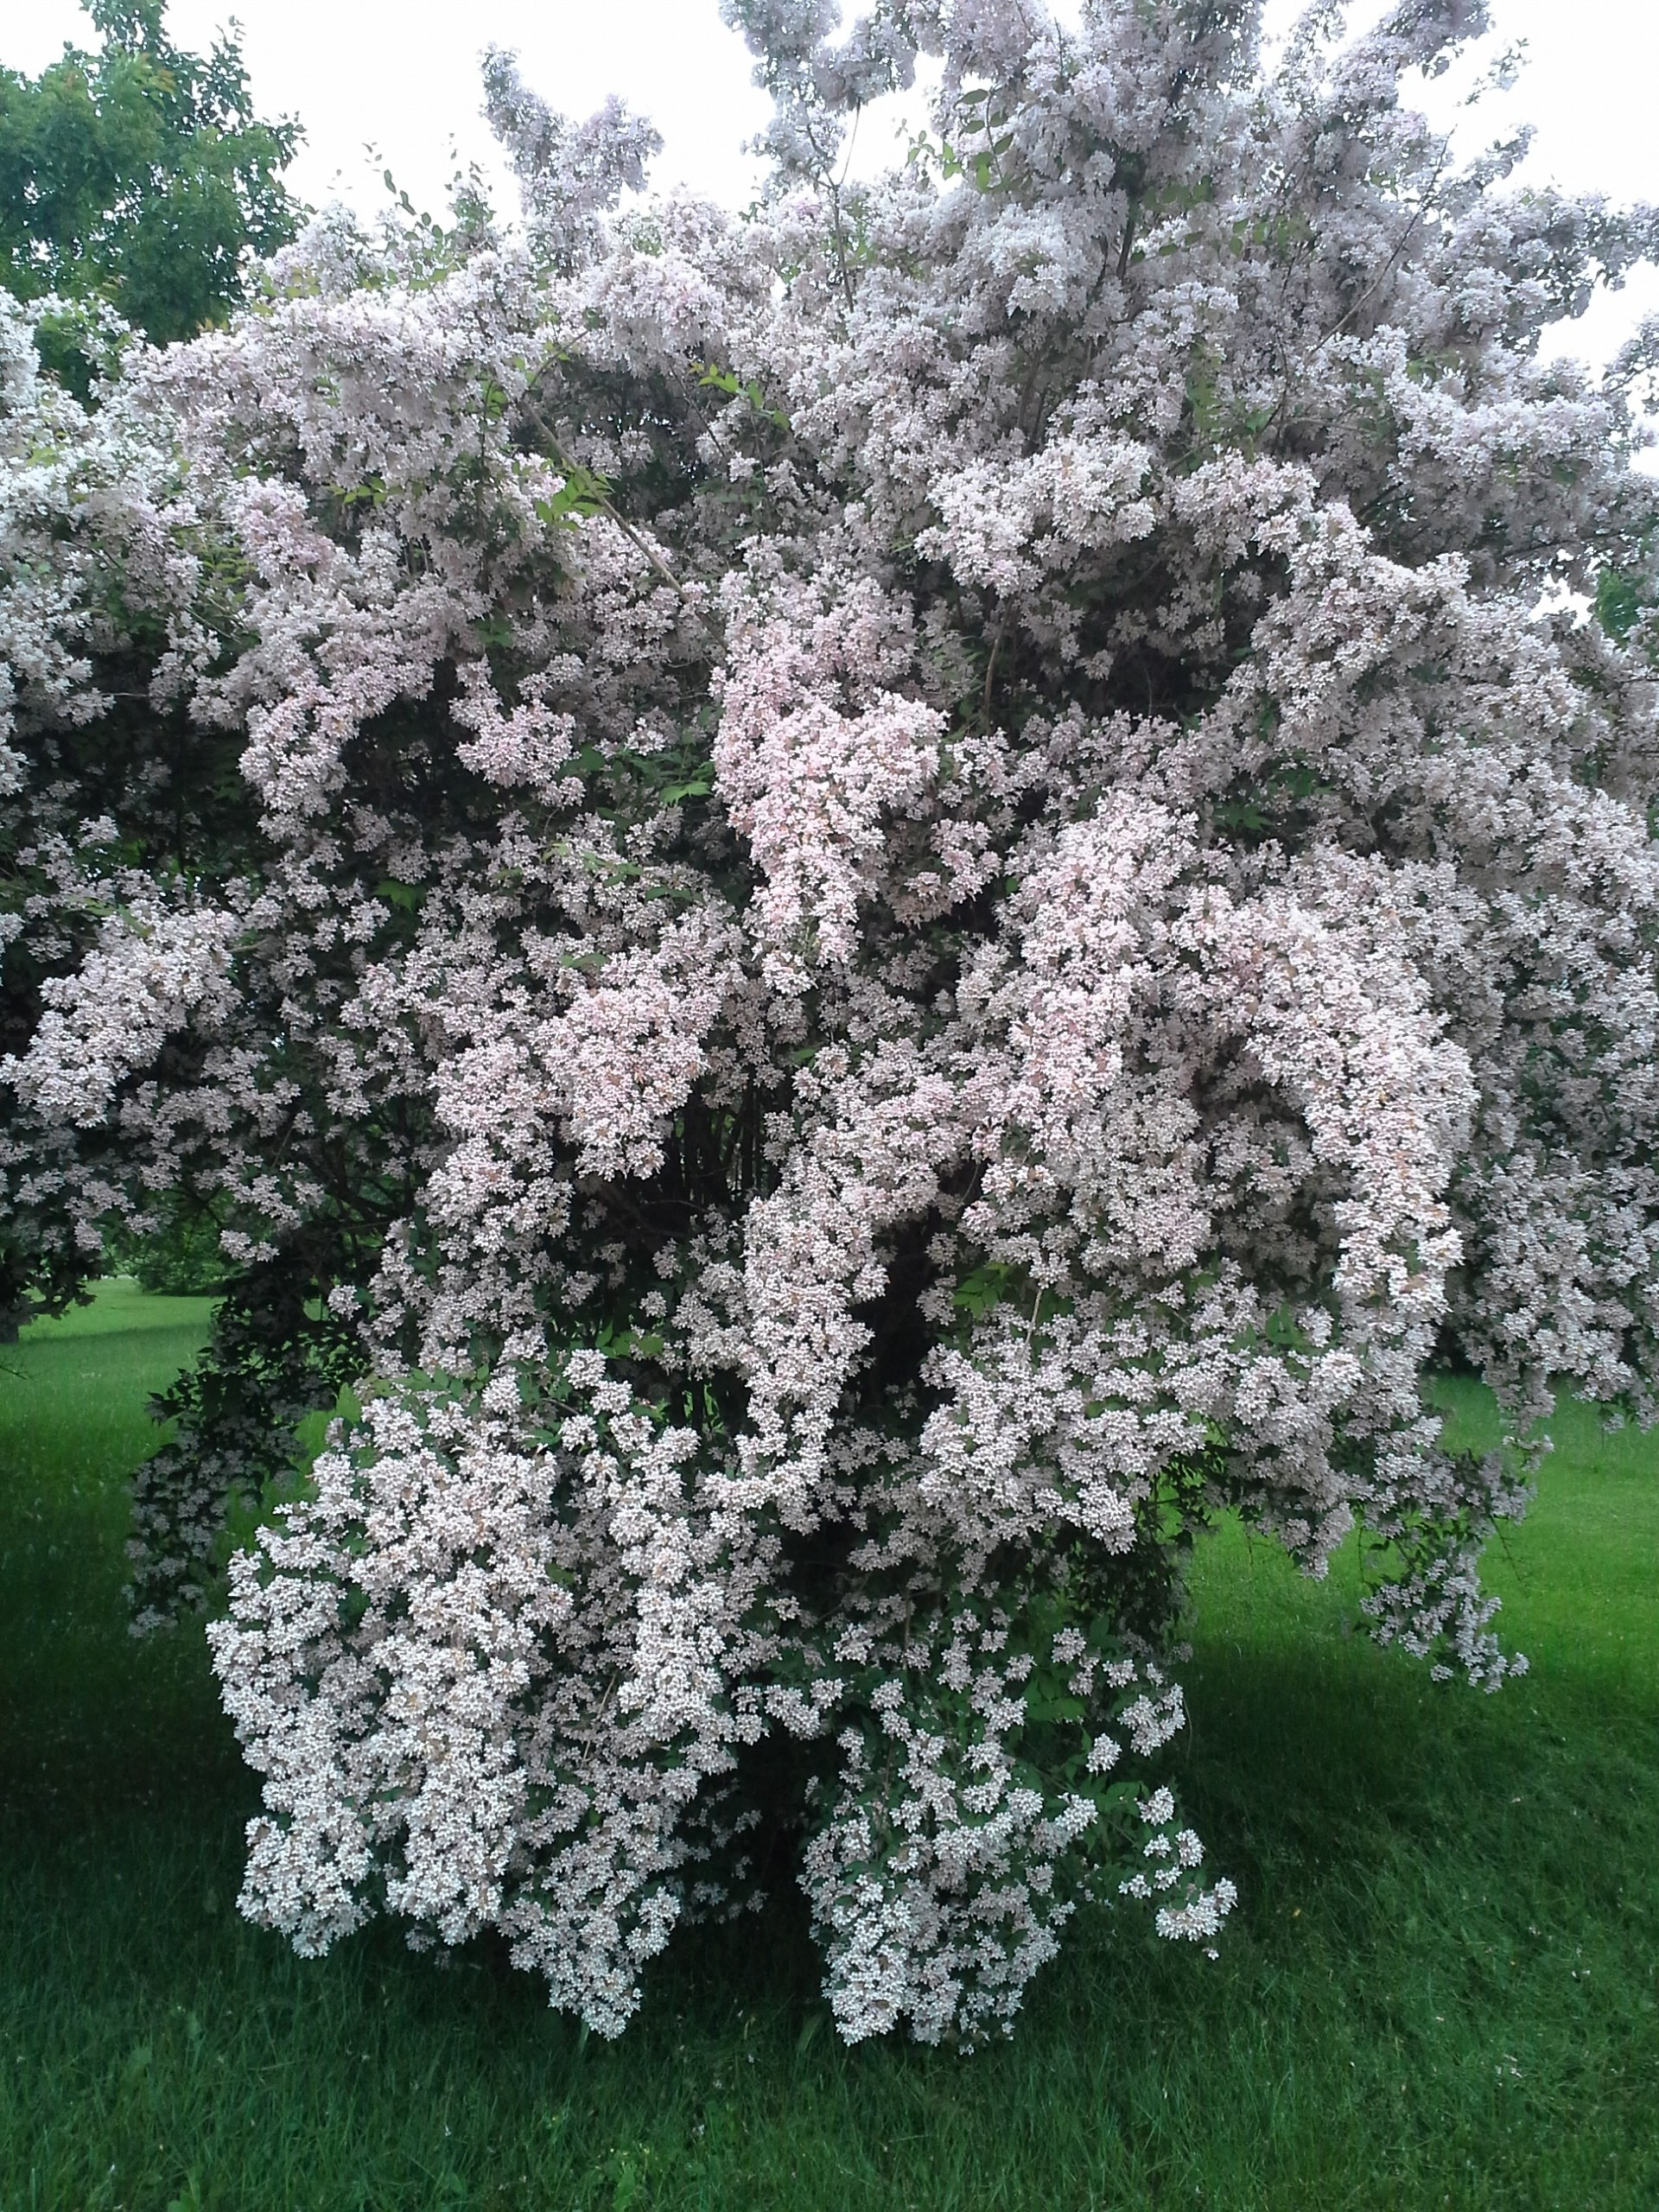 How To Grow Weigela Growing And Caring For Weigela